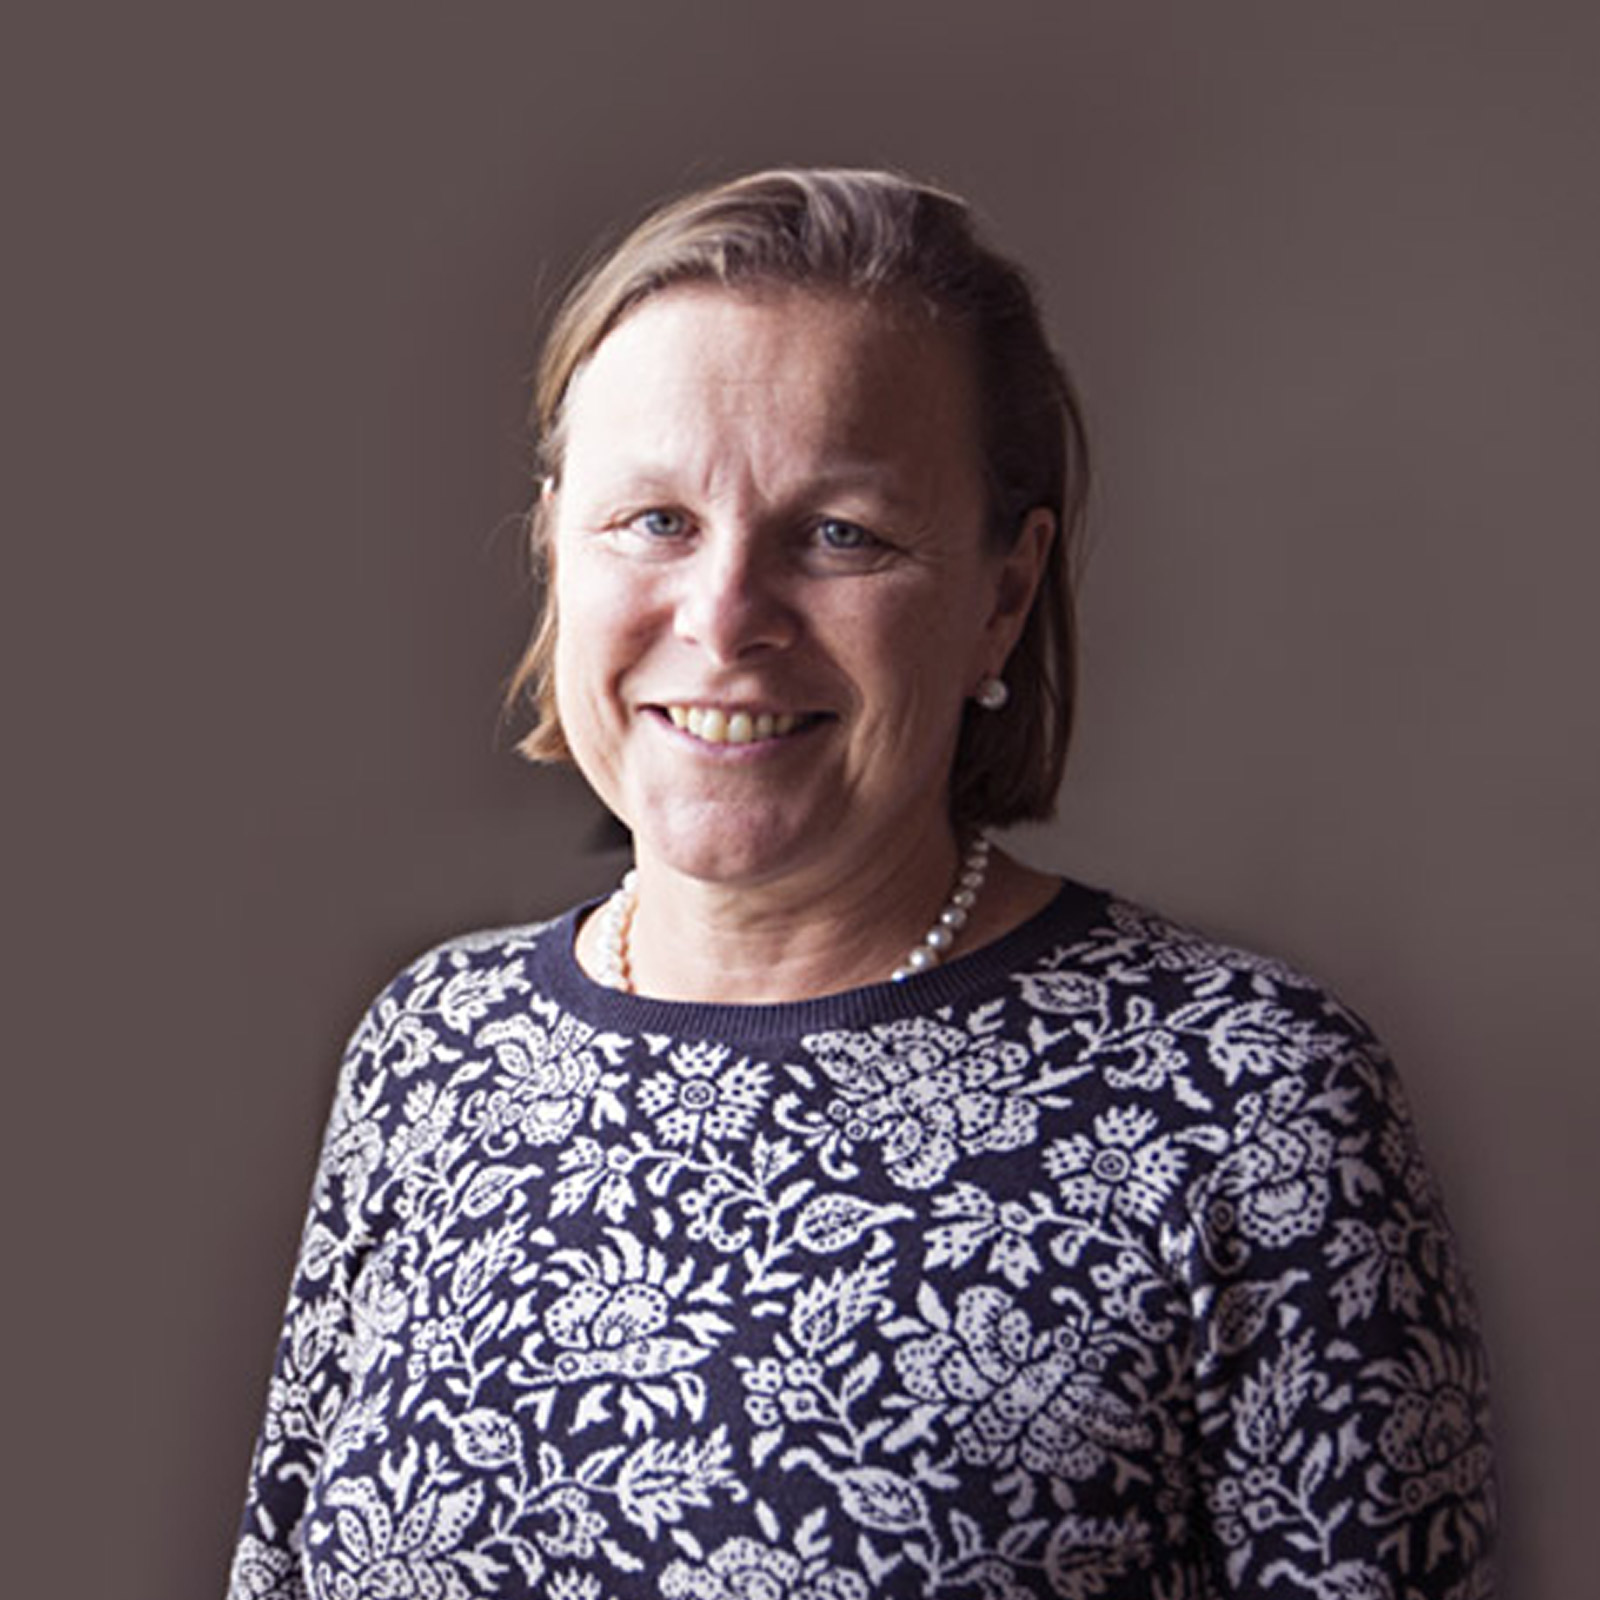 Dr Fiona Wood will be speaking at LWIB on 7 September 2018